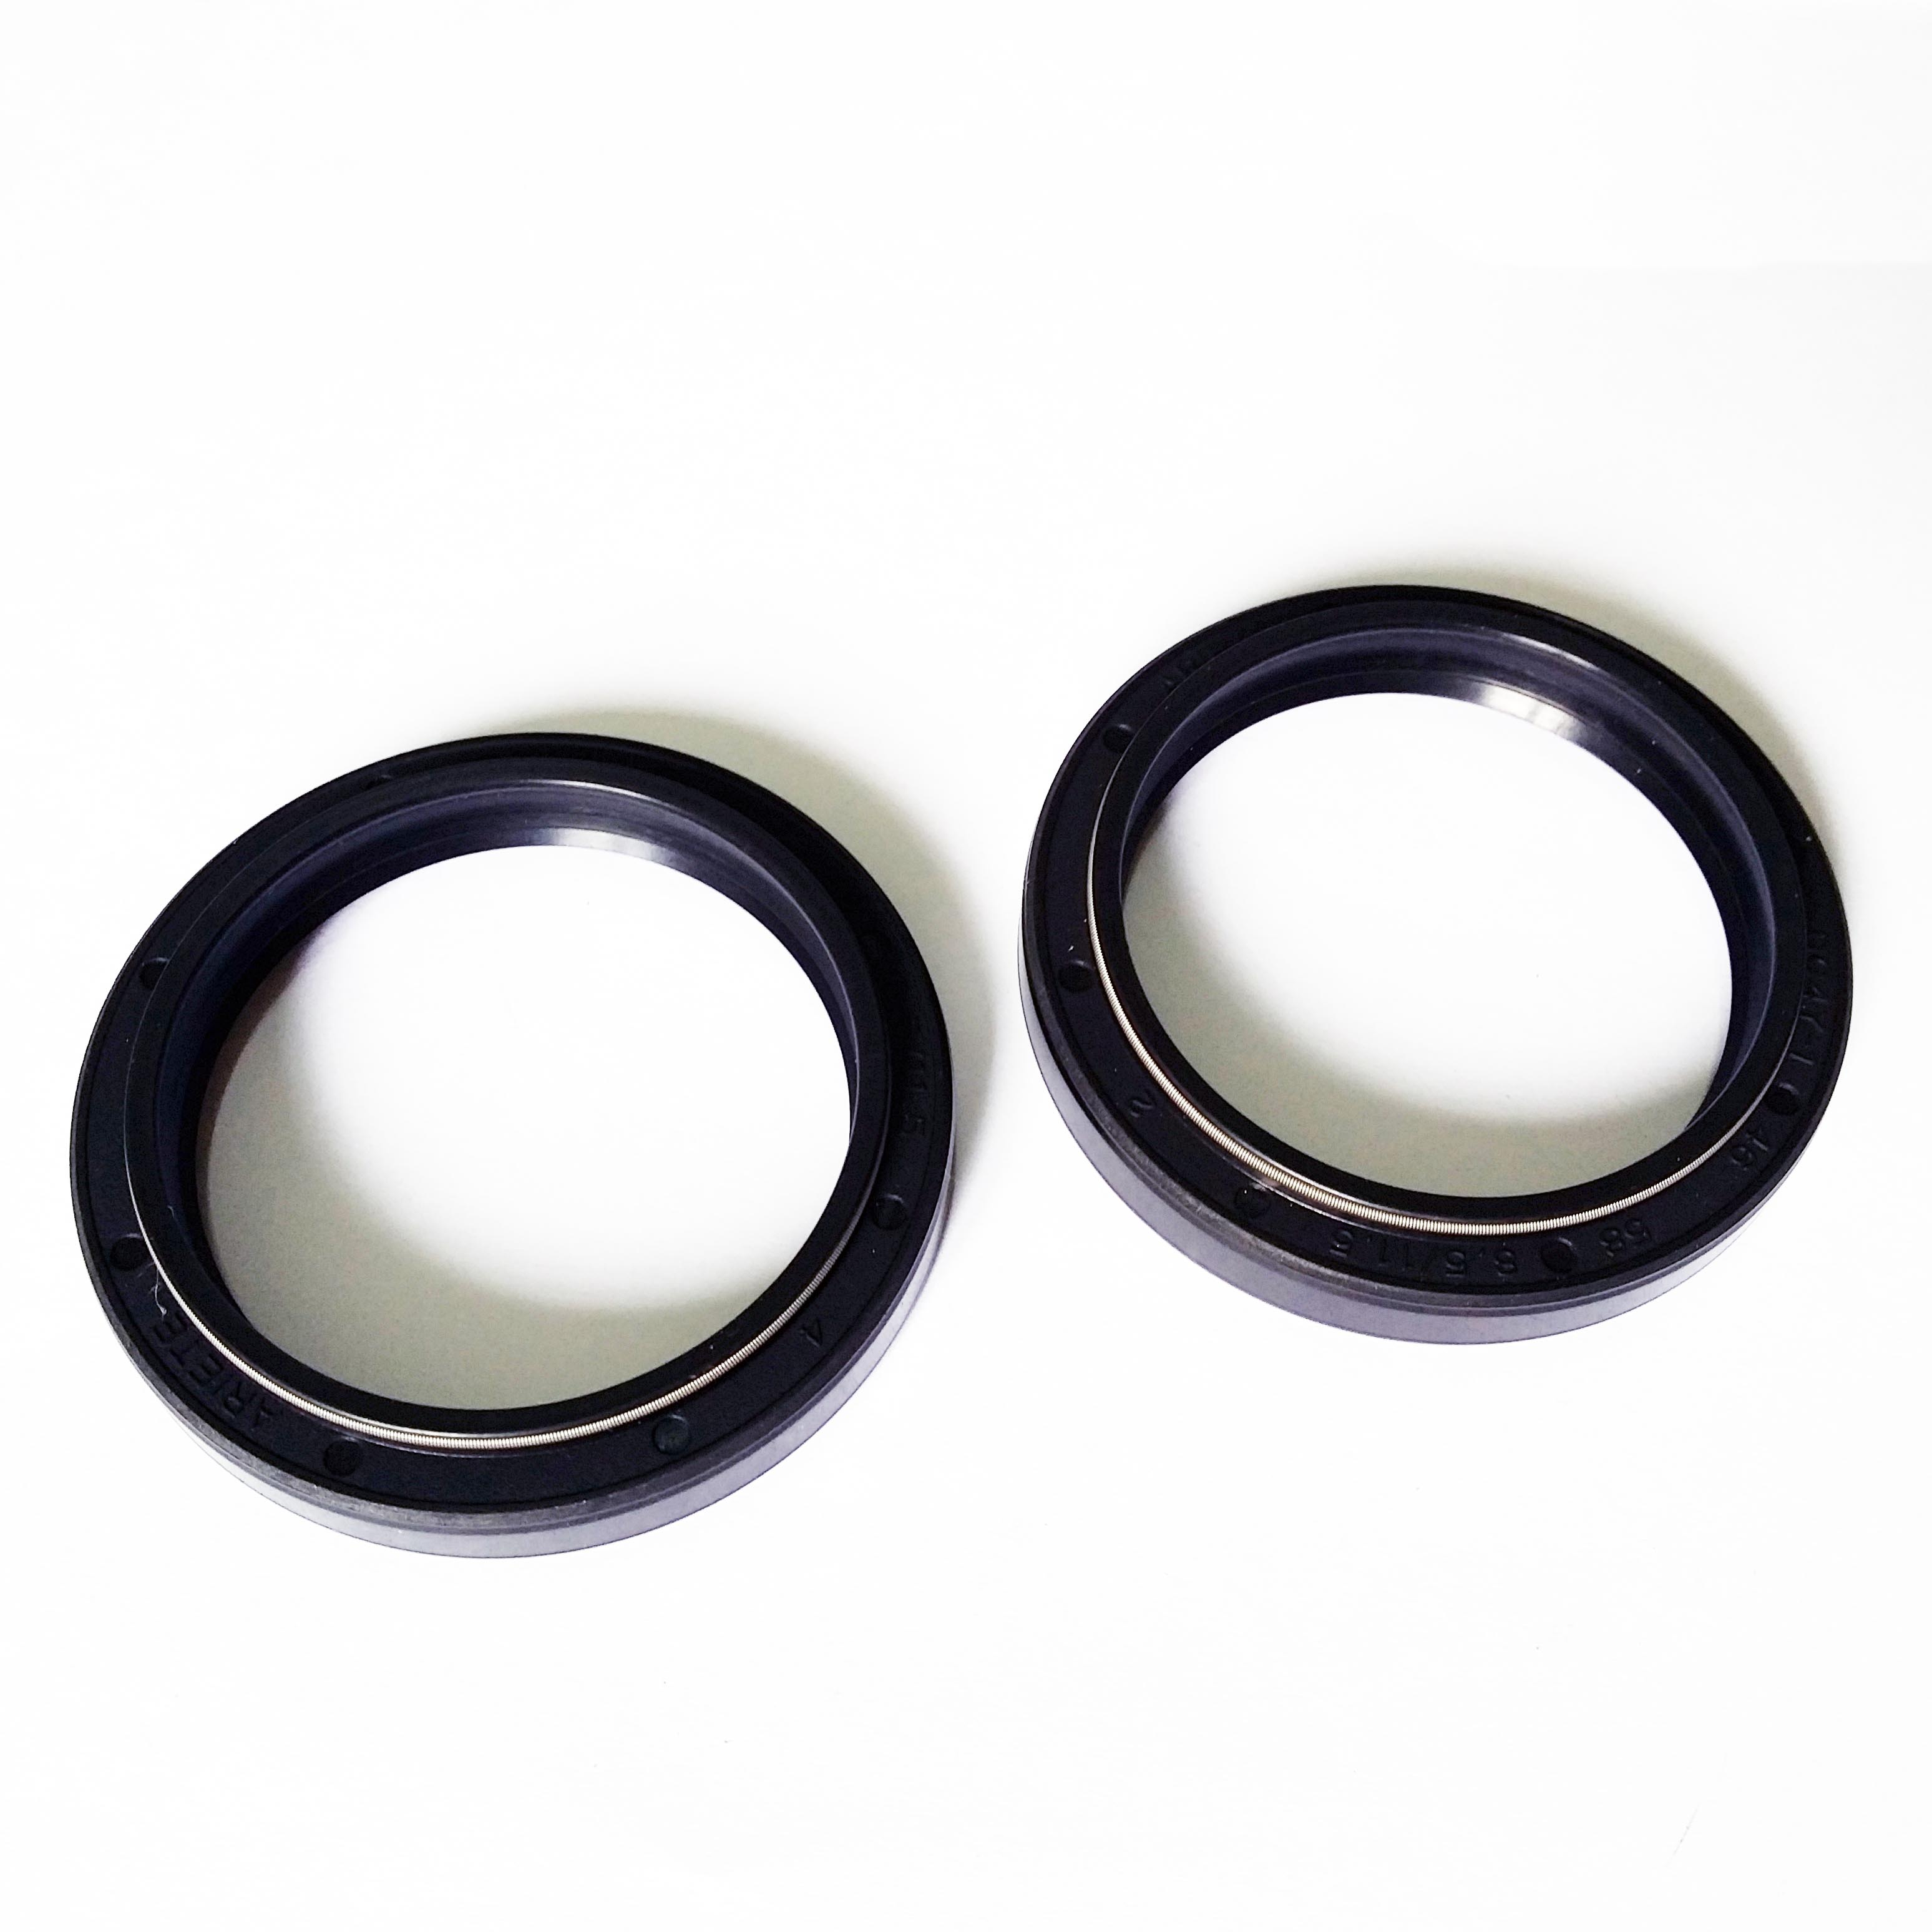 K-Tech TM EN250   2007-2016 NOK Front Fork Oil Seals 50x63x11mm